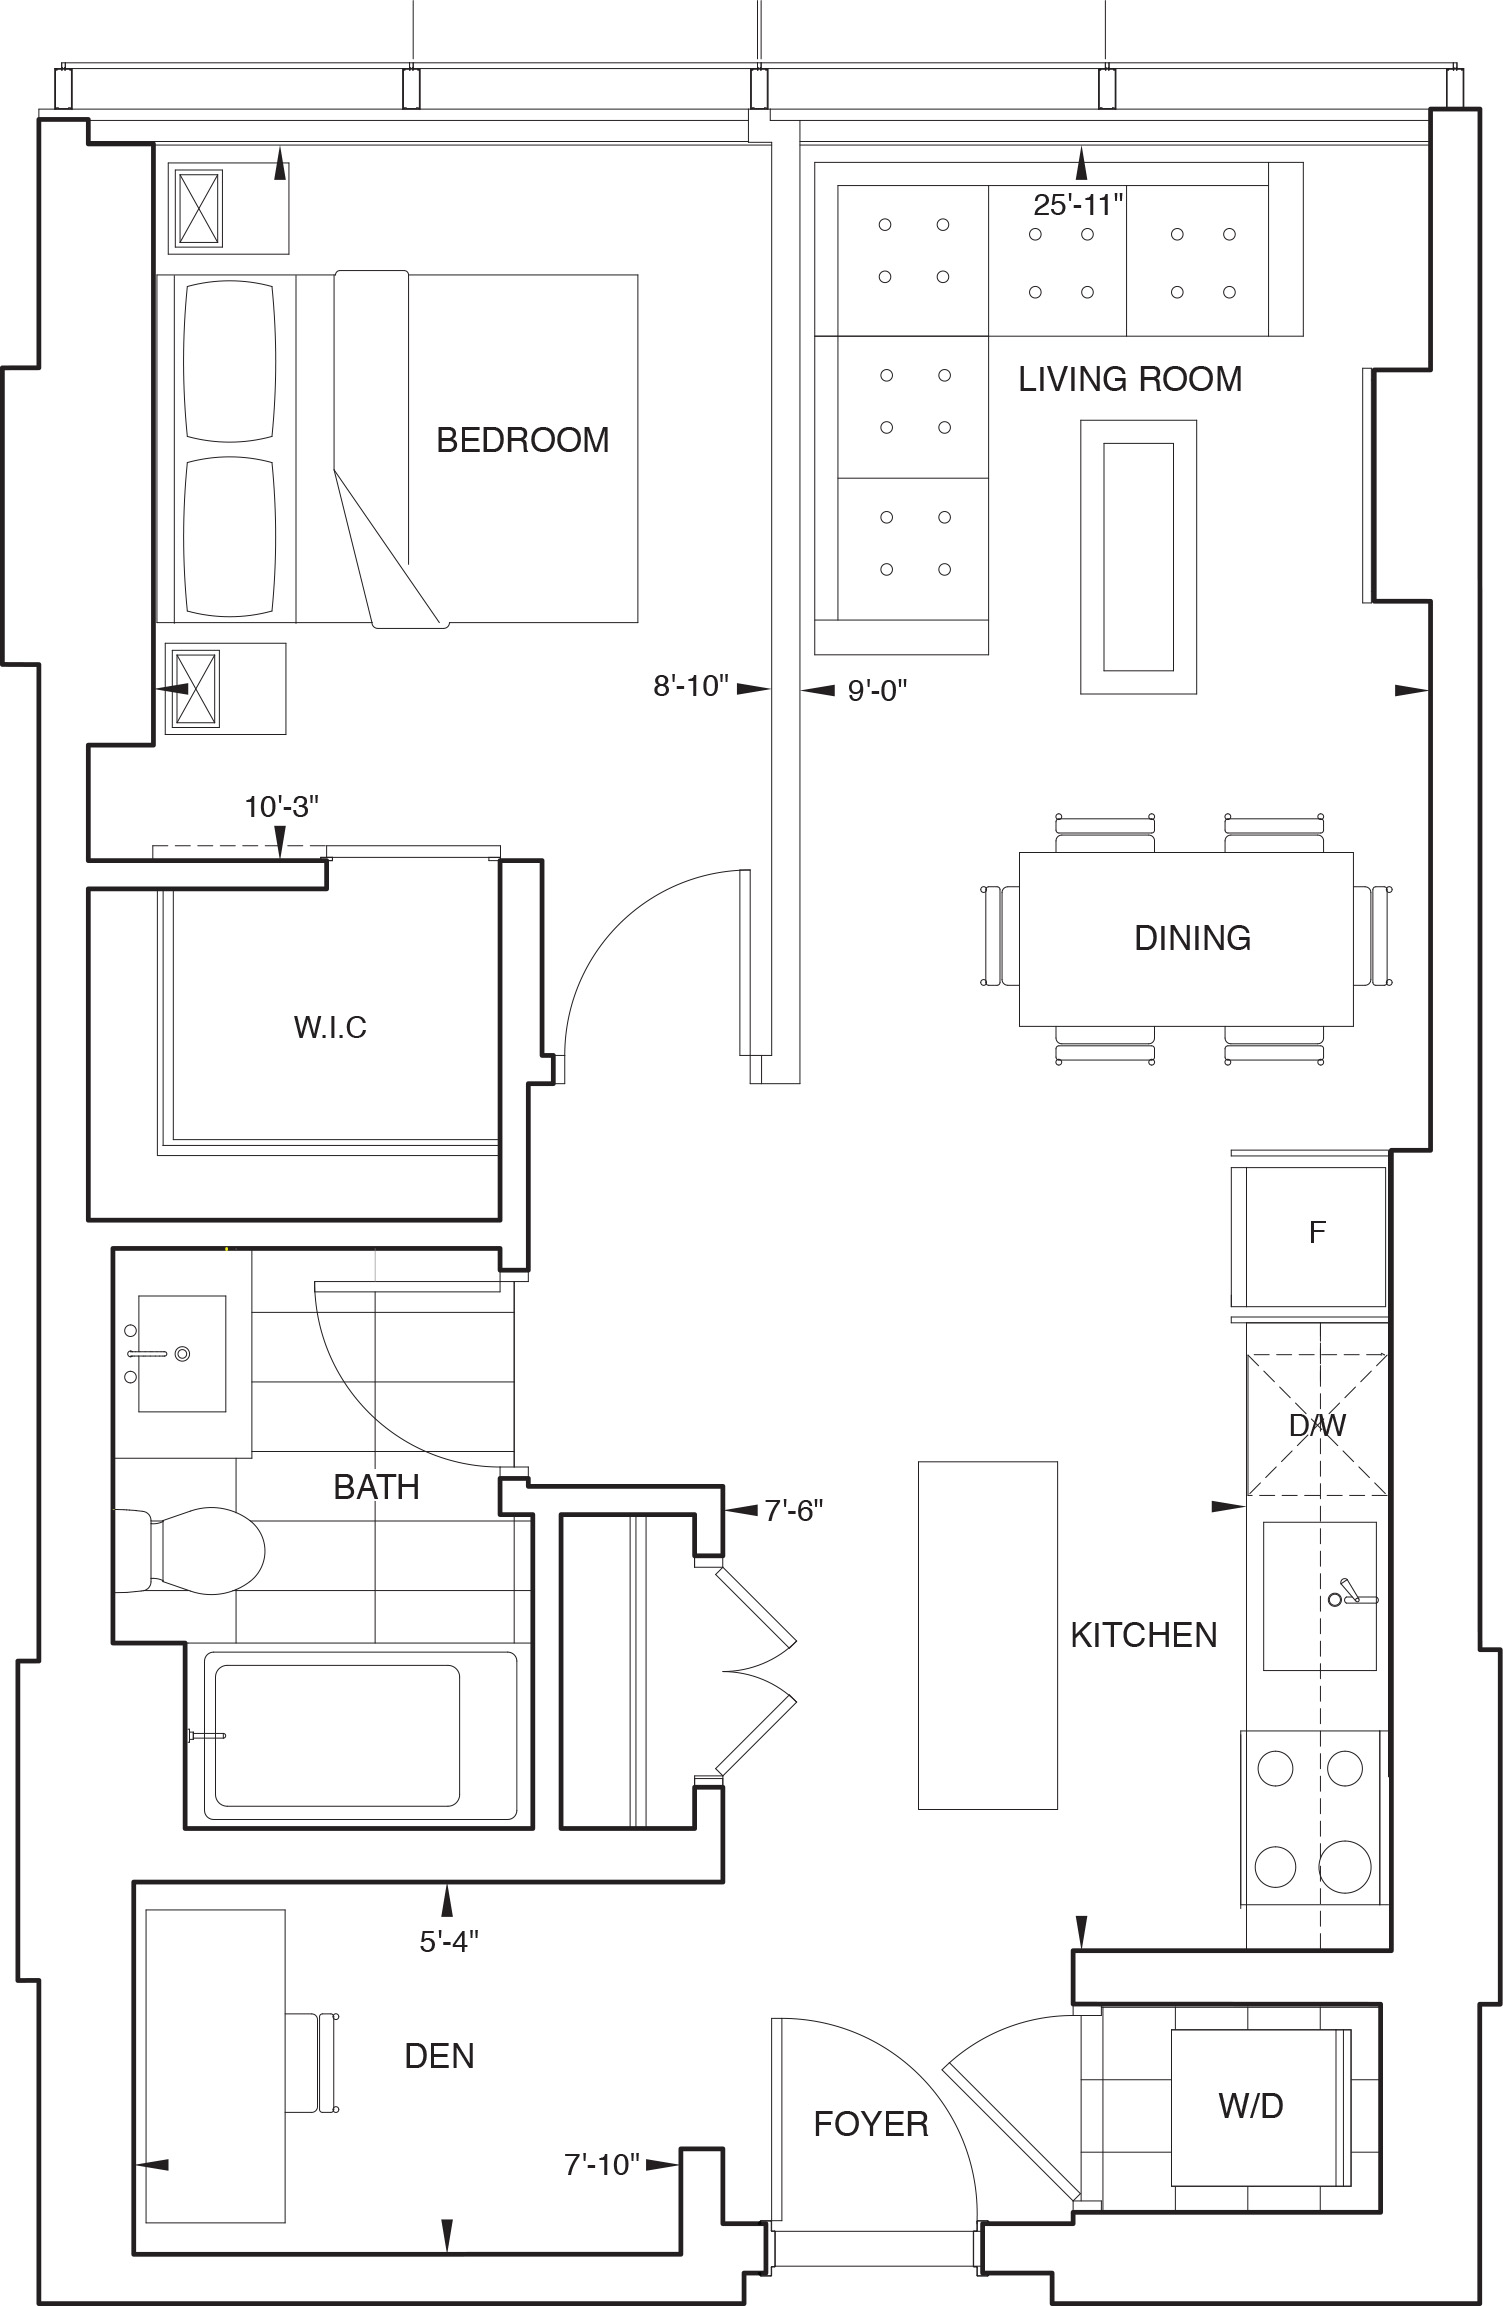 Floorplan for SKY Residence C